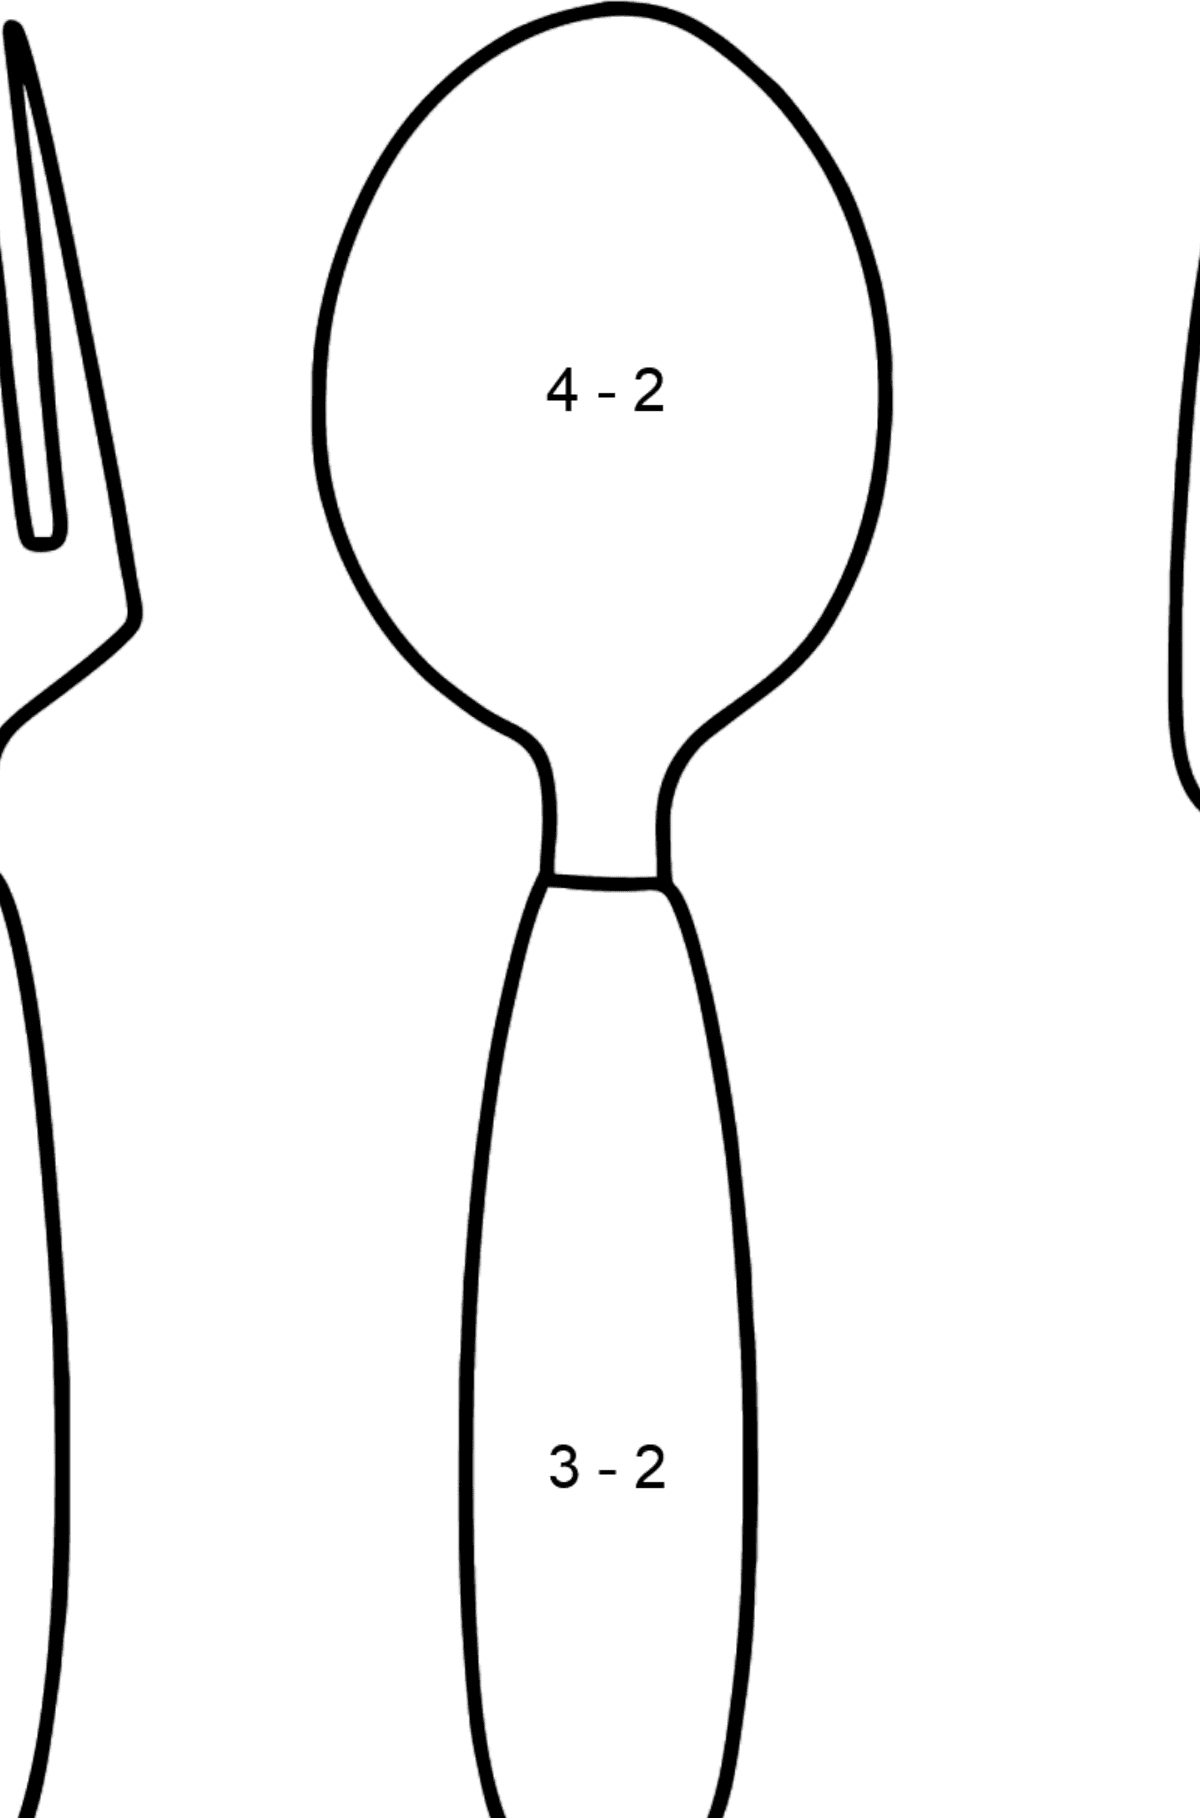 Cutlery coloring page - Math Coloring - Subtraction for Kids